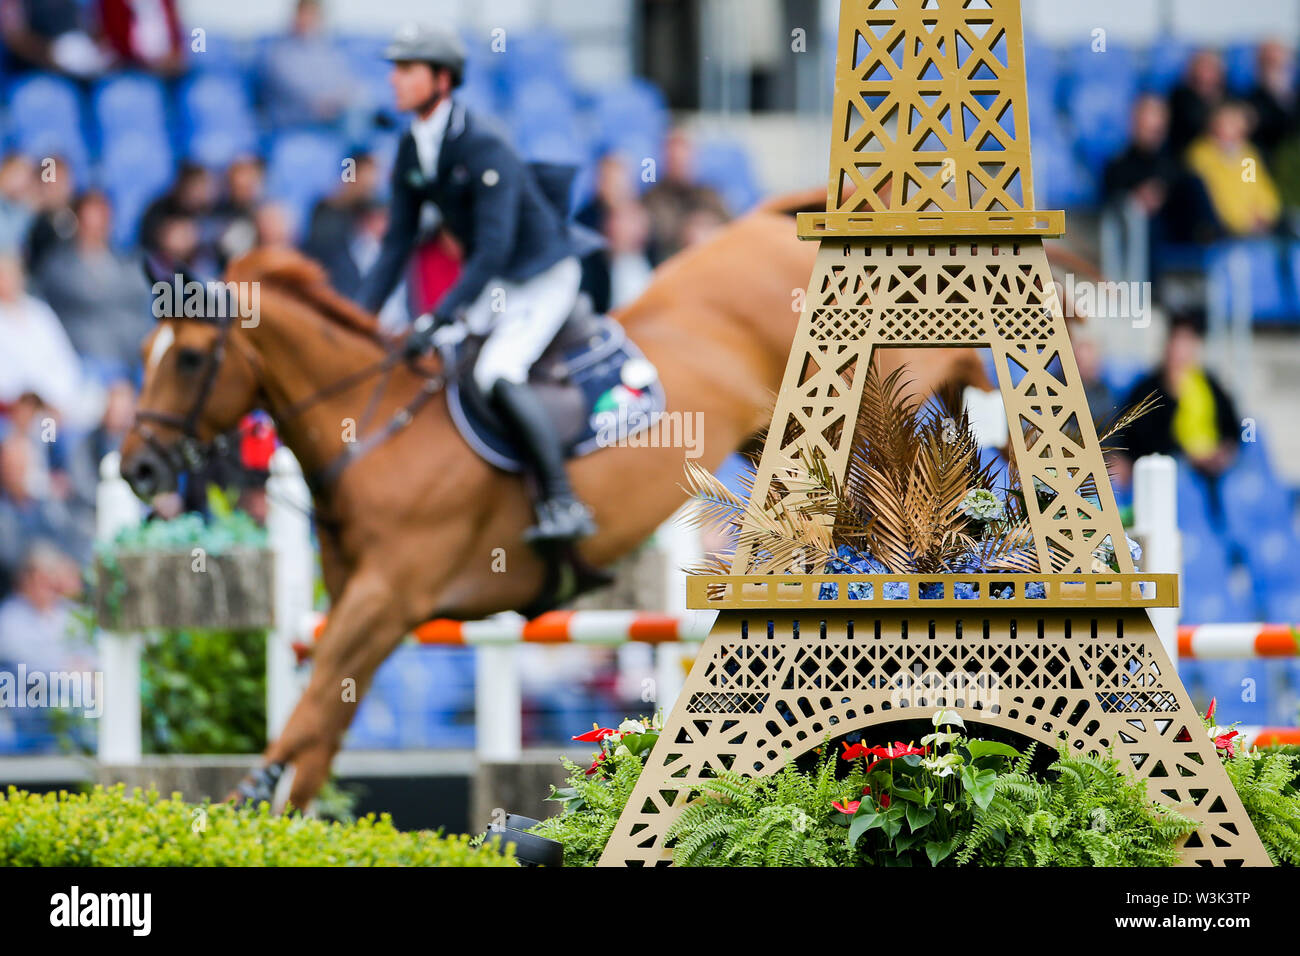 Aachen, Germany. 16th July, 2019. CHIO, equestrian sports, jumping: A rider jumps over an obstacle behind the model of an Eiffel Tower. France is this year's partner country of the tournament. Credit: Rolf Vennenbernd/dpa/Alamy Live News - Stock Image